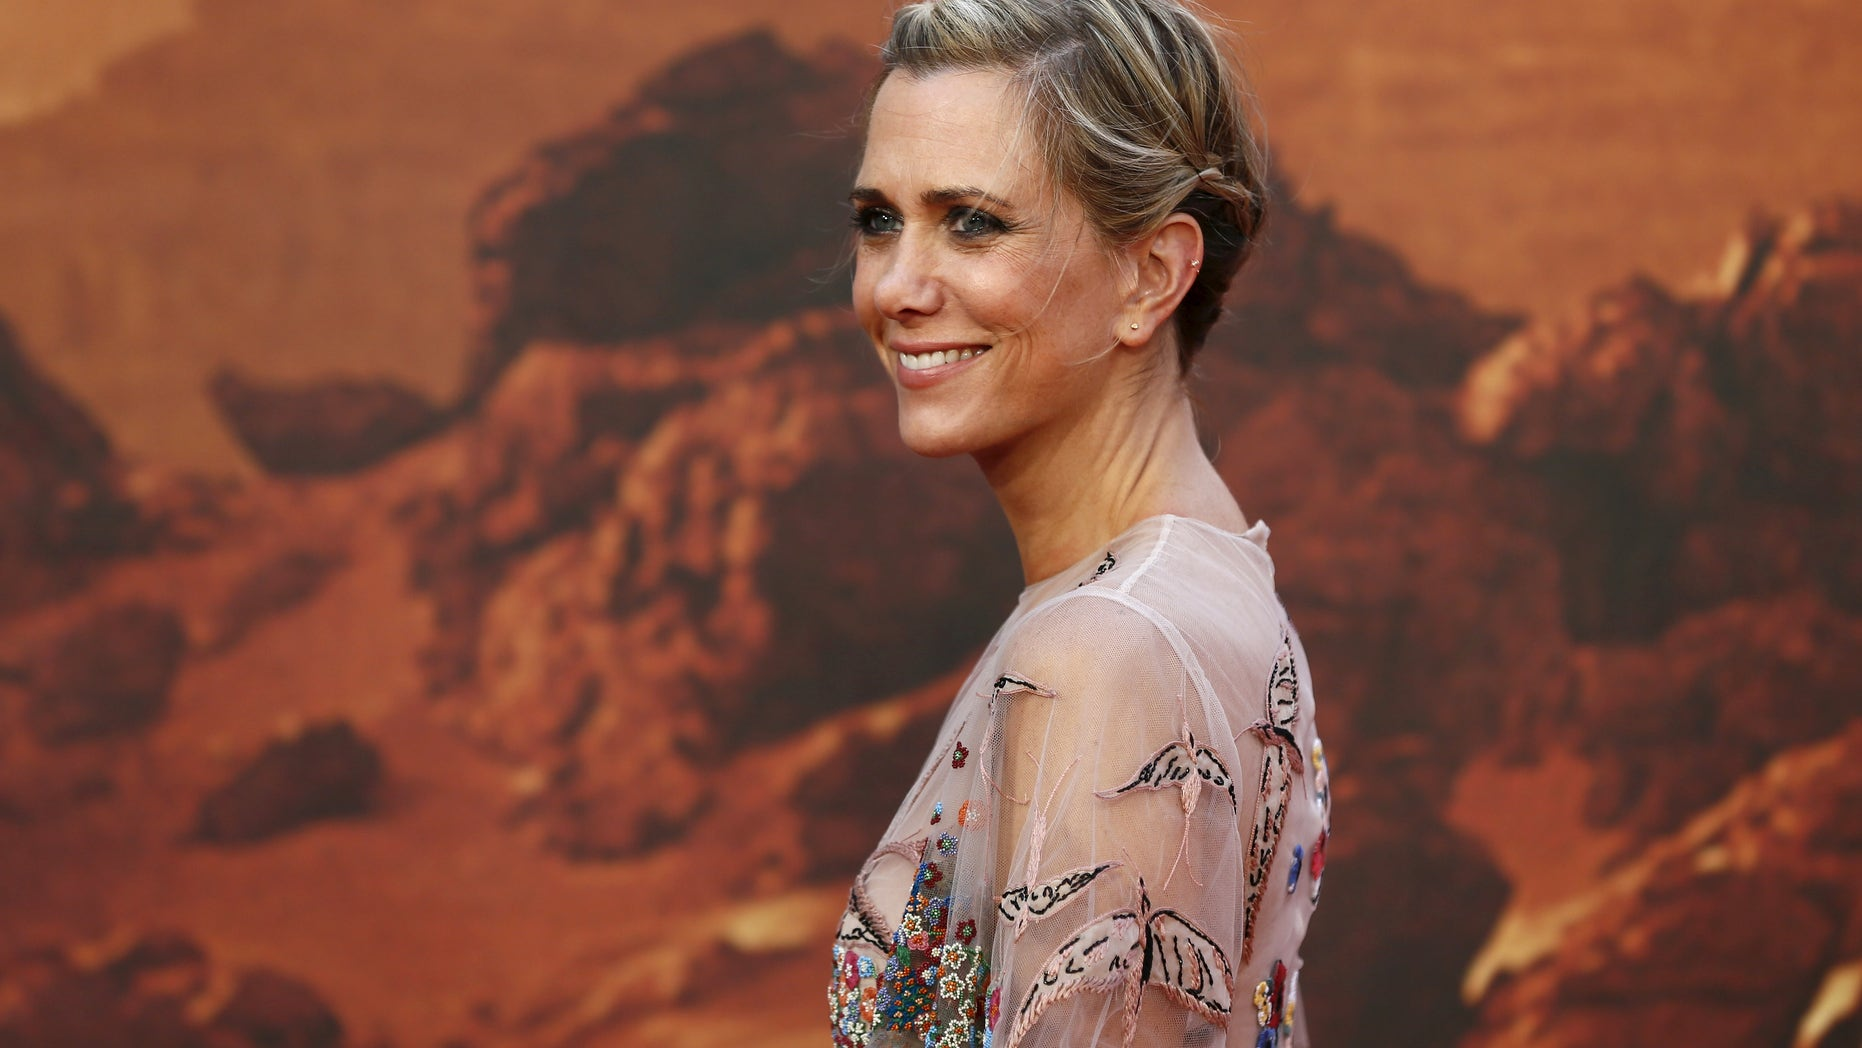 """Actress Kristen Wiig arrives for the UK premiere of """"The Martian"""" at Leicester Square in London, Britain, September 24, 2015. REUTERS/Stefan Wermuth - RTX1SBEZ"""